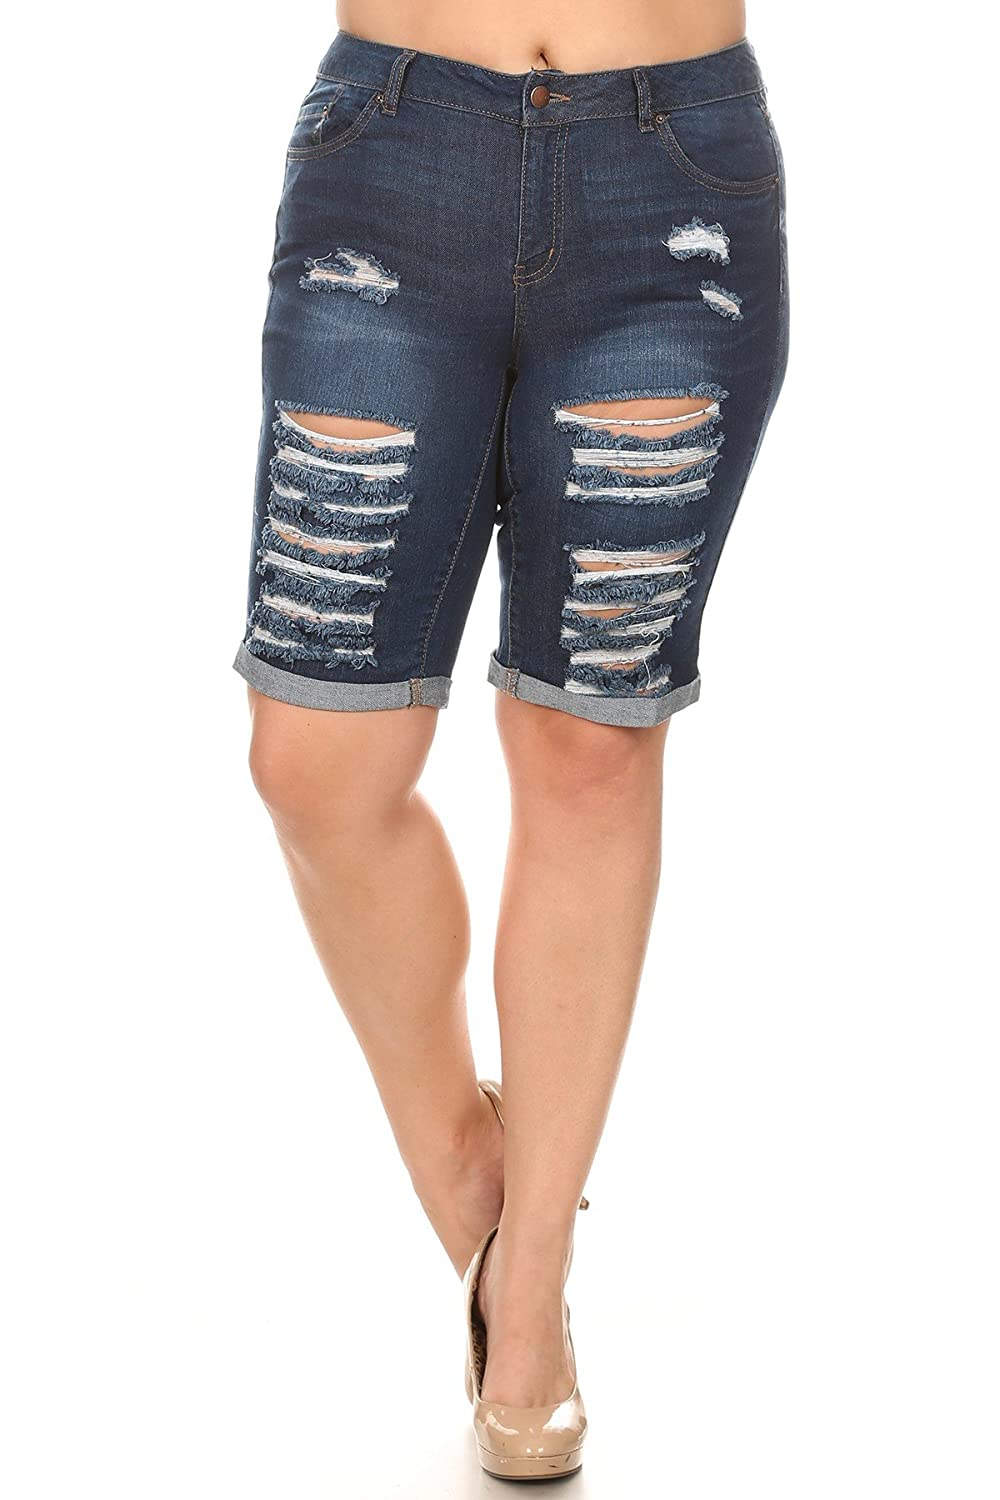 Women's Plus Size Mid Length Cuffed Denim Jean Shorts